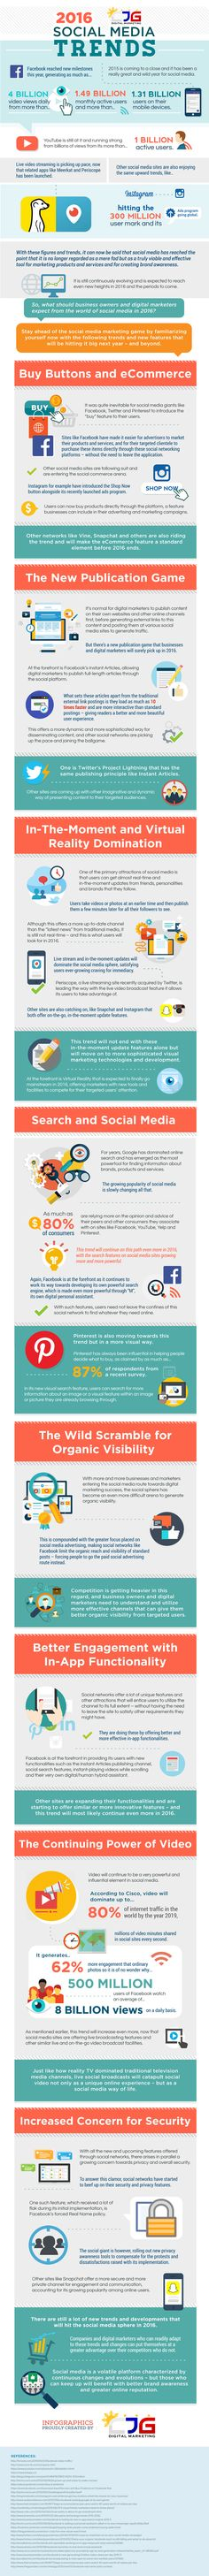 Top 8 Social Media Trends to Watch Out for in 2016 #Infographic #SocialMedia